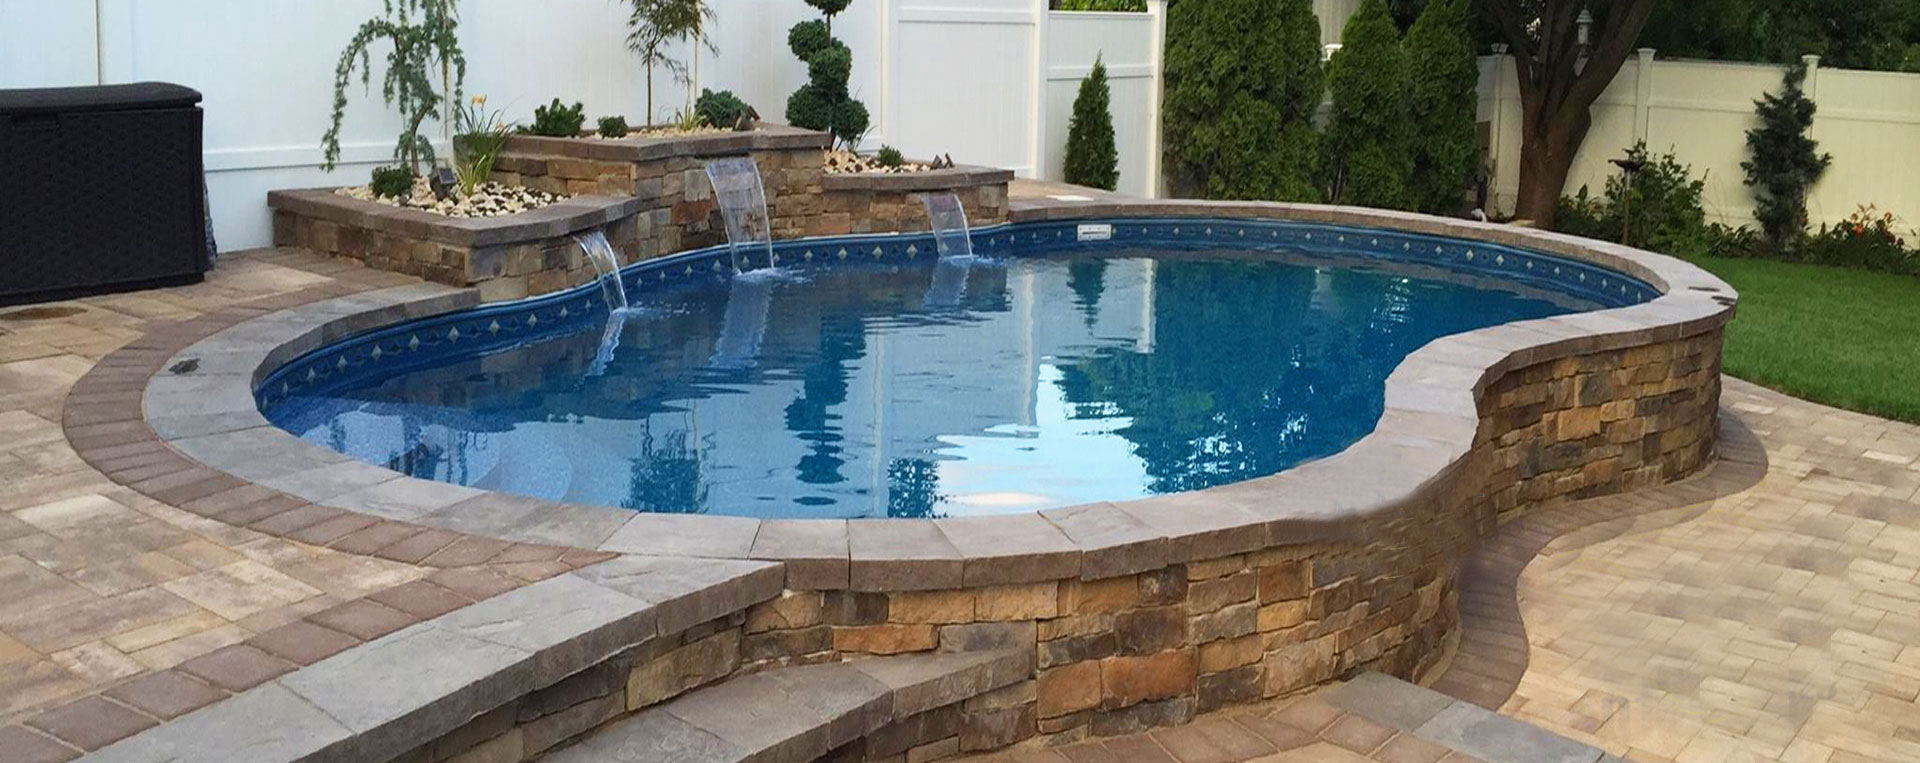 Lehigh Valley Pool Hydro Dynamic Pools Pools And Spas